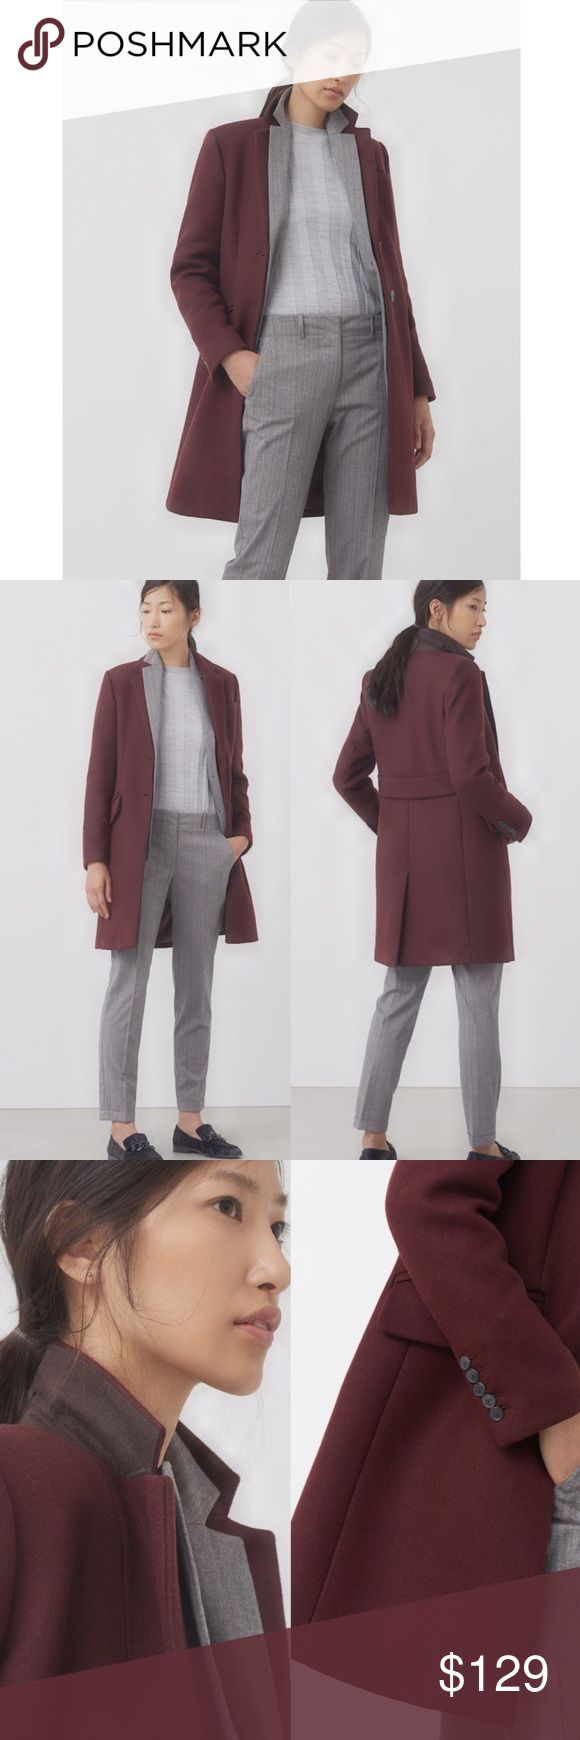 NWT: Mango Maroon Wool Straight-Cut Coat Up your winter game with this chic wool coat from Mango! The quality of the material gives you plenty of warmth, while the straight-cut gives you the most flattering silhouette! This color is also very unique- a muted maroon color that stands out from the crowd. Also love the stiffness and two-toned color (brown under) of the collar so you can wear it popped up for that chic sporty look. Purchased full price for $199. Still in stores. 80% wool 20%…